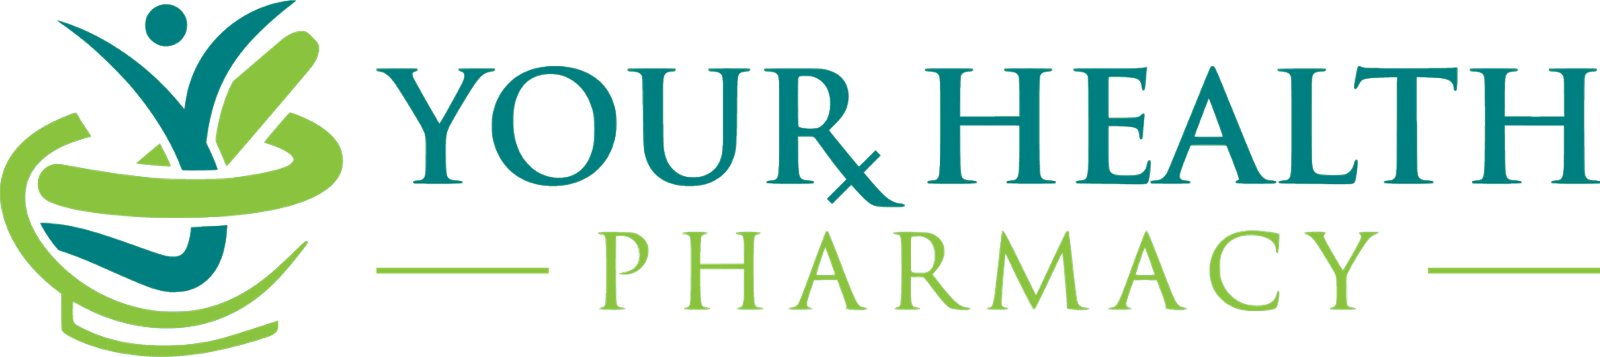 Your Health Pharmacy